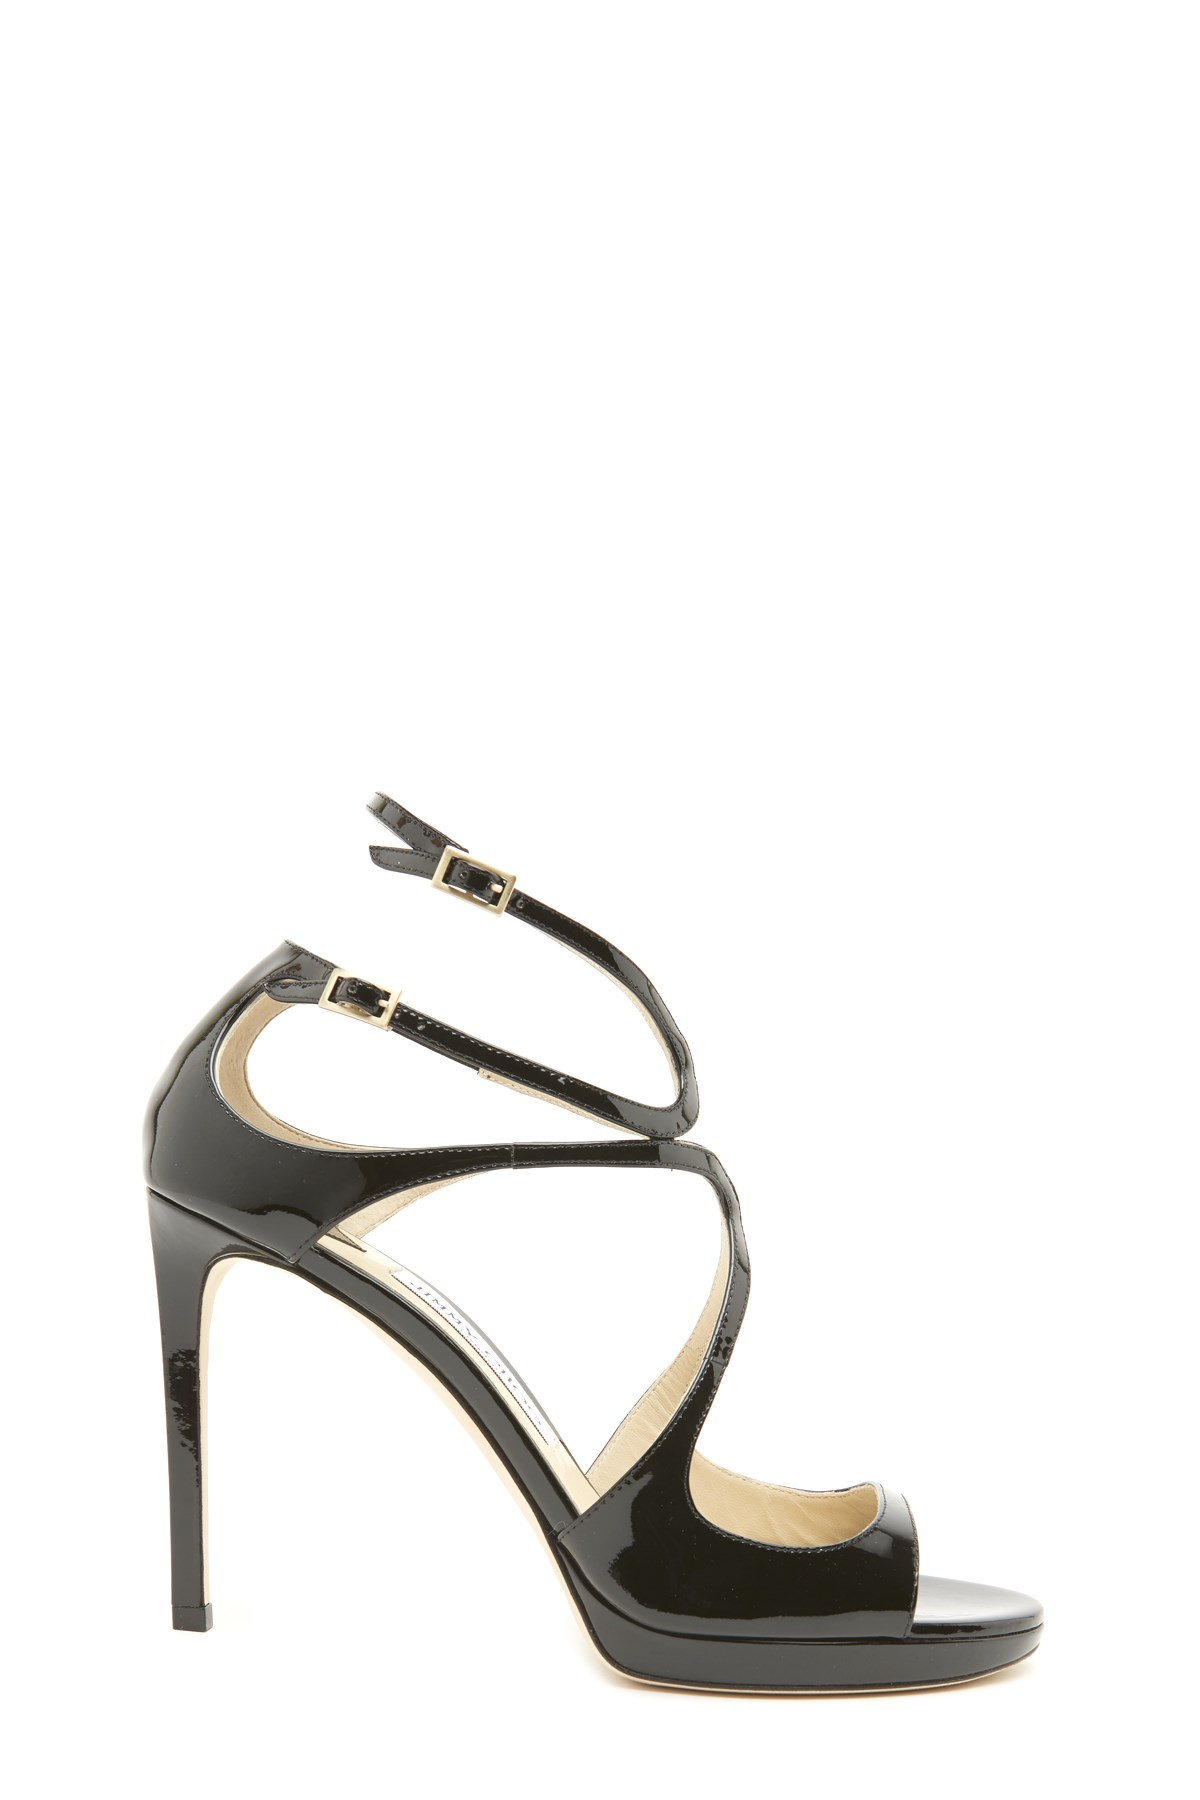 67eb034fee1d jimmy choo  Lance  sandals available on julian-fashion.com - 60847